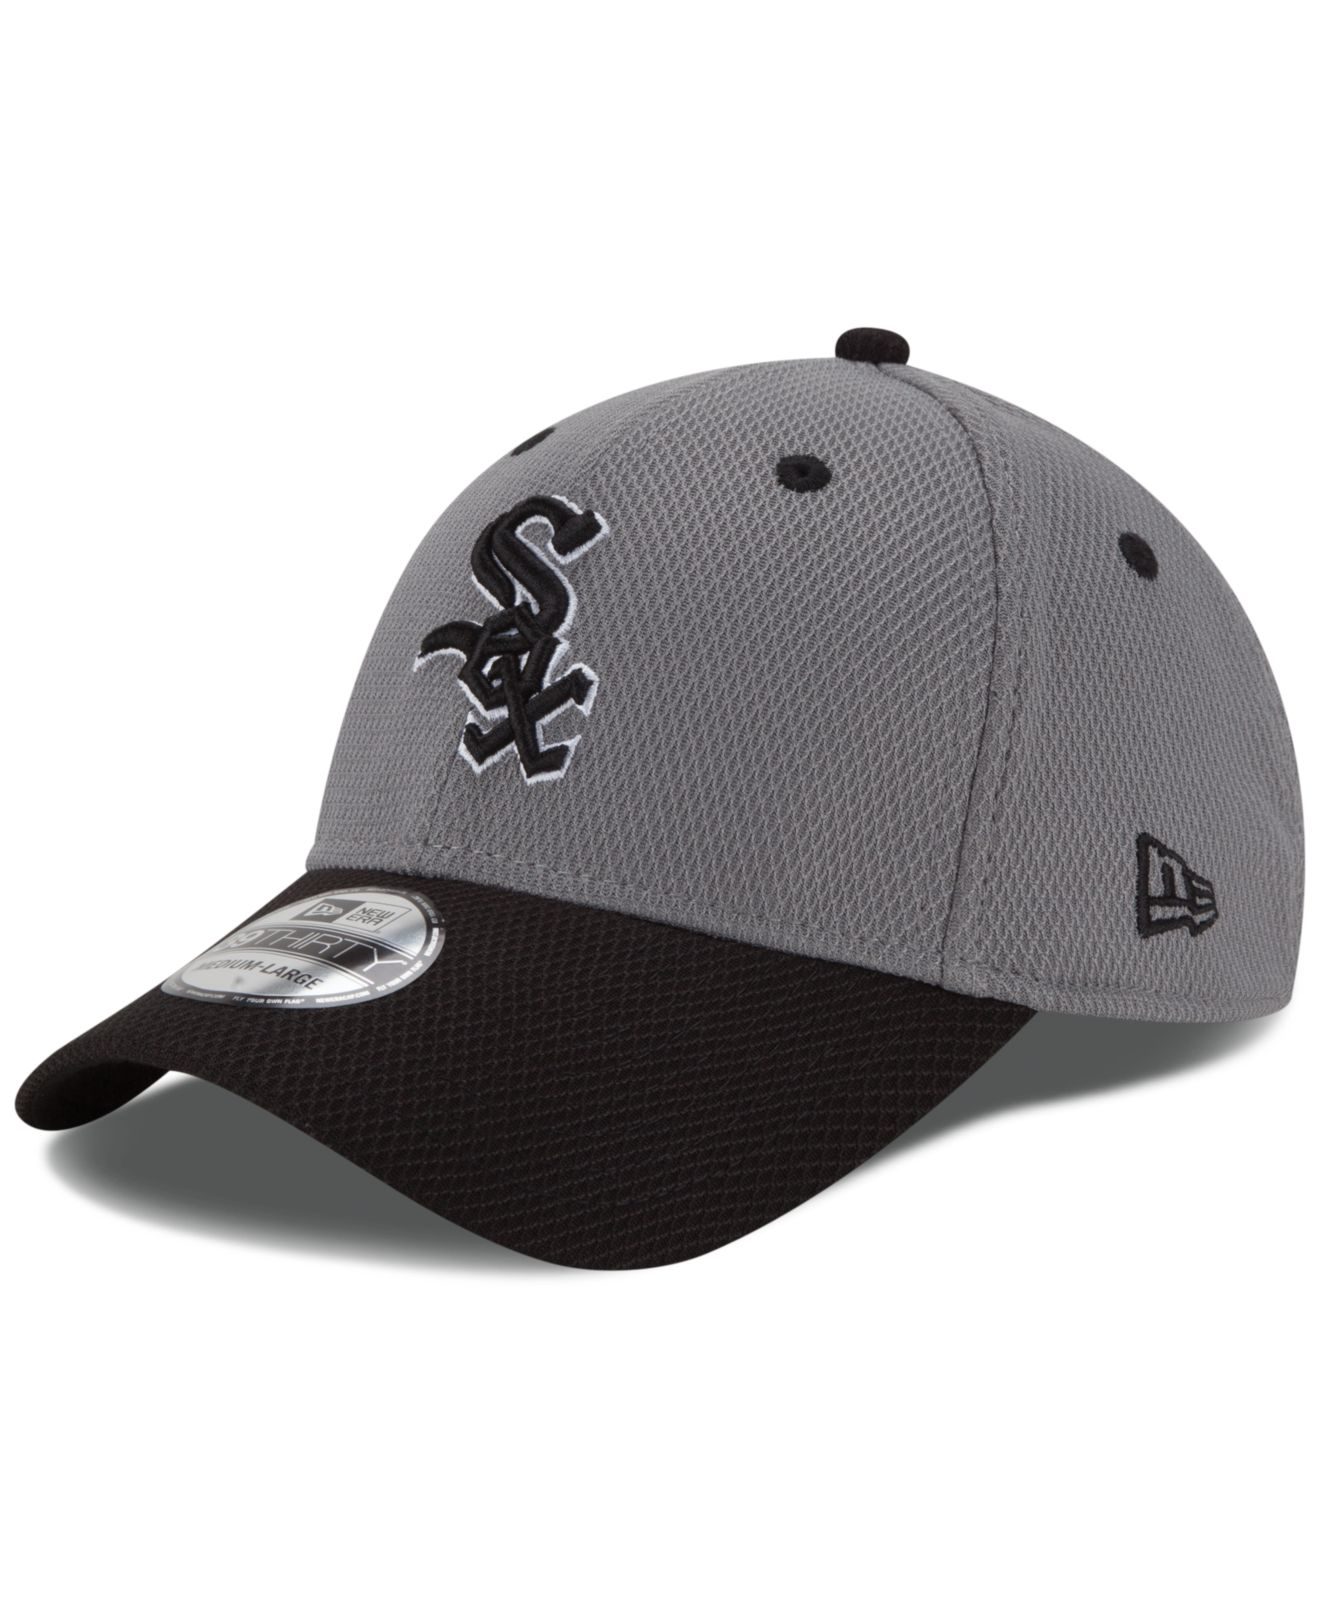 online store 21a5e fe65a ... shop lyst ktz chicago white sox team addict 39thirty cap in natural for  men 93ae3 88fc3